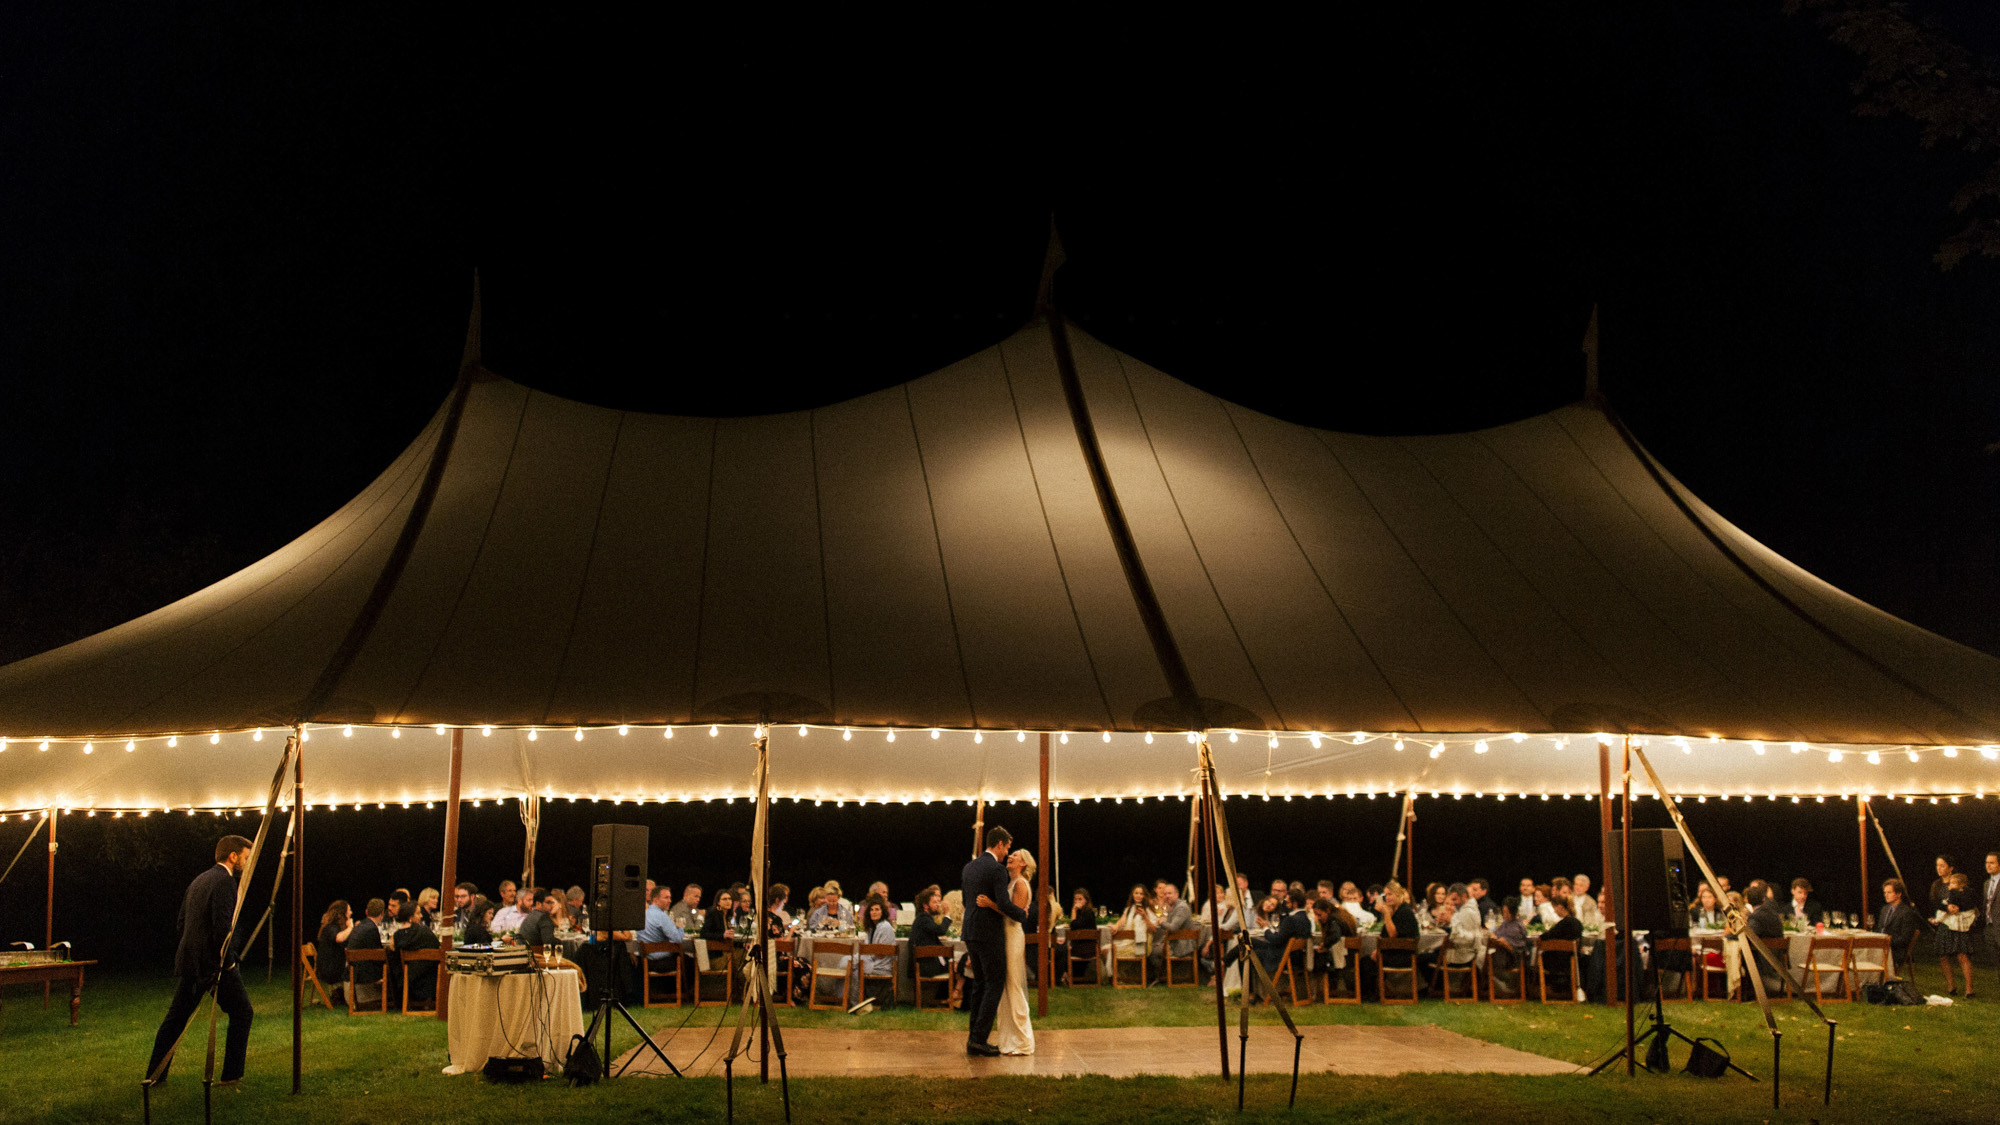 upstate_new_york_wedding_alec_vanderboom-0108.jpg